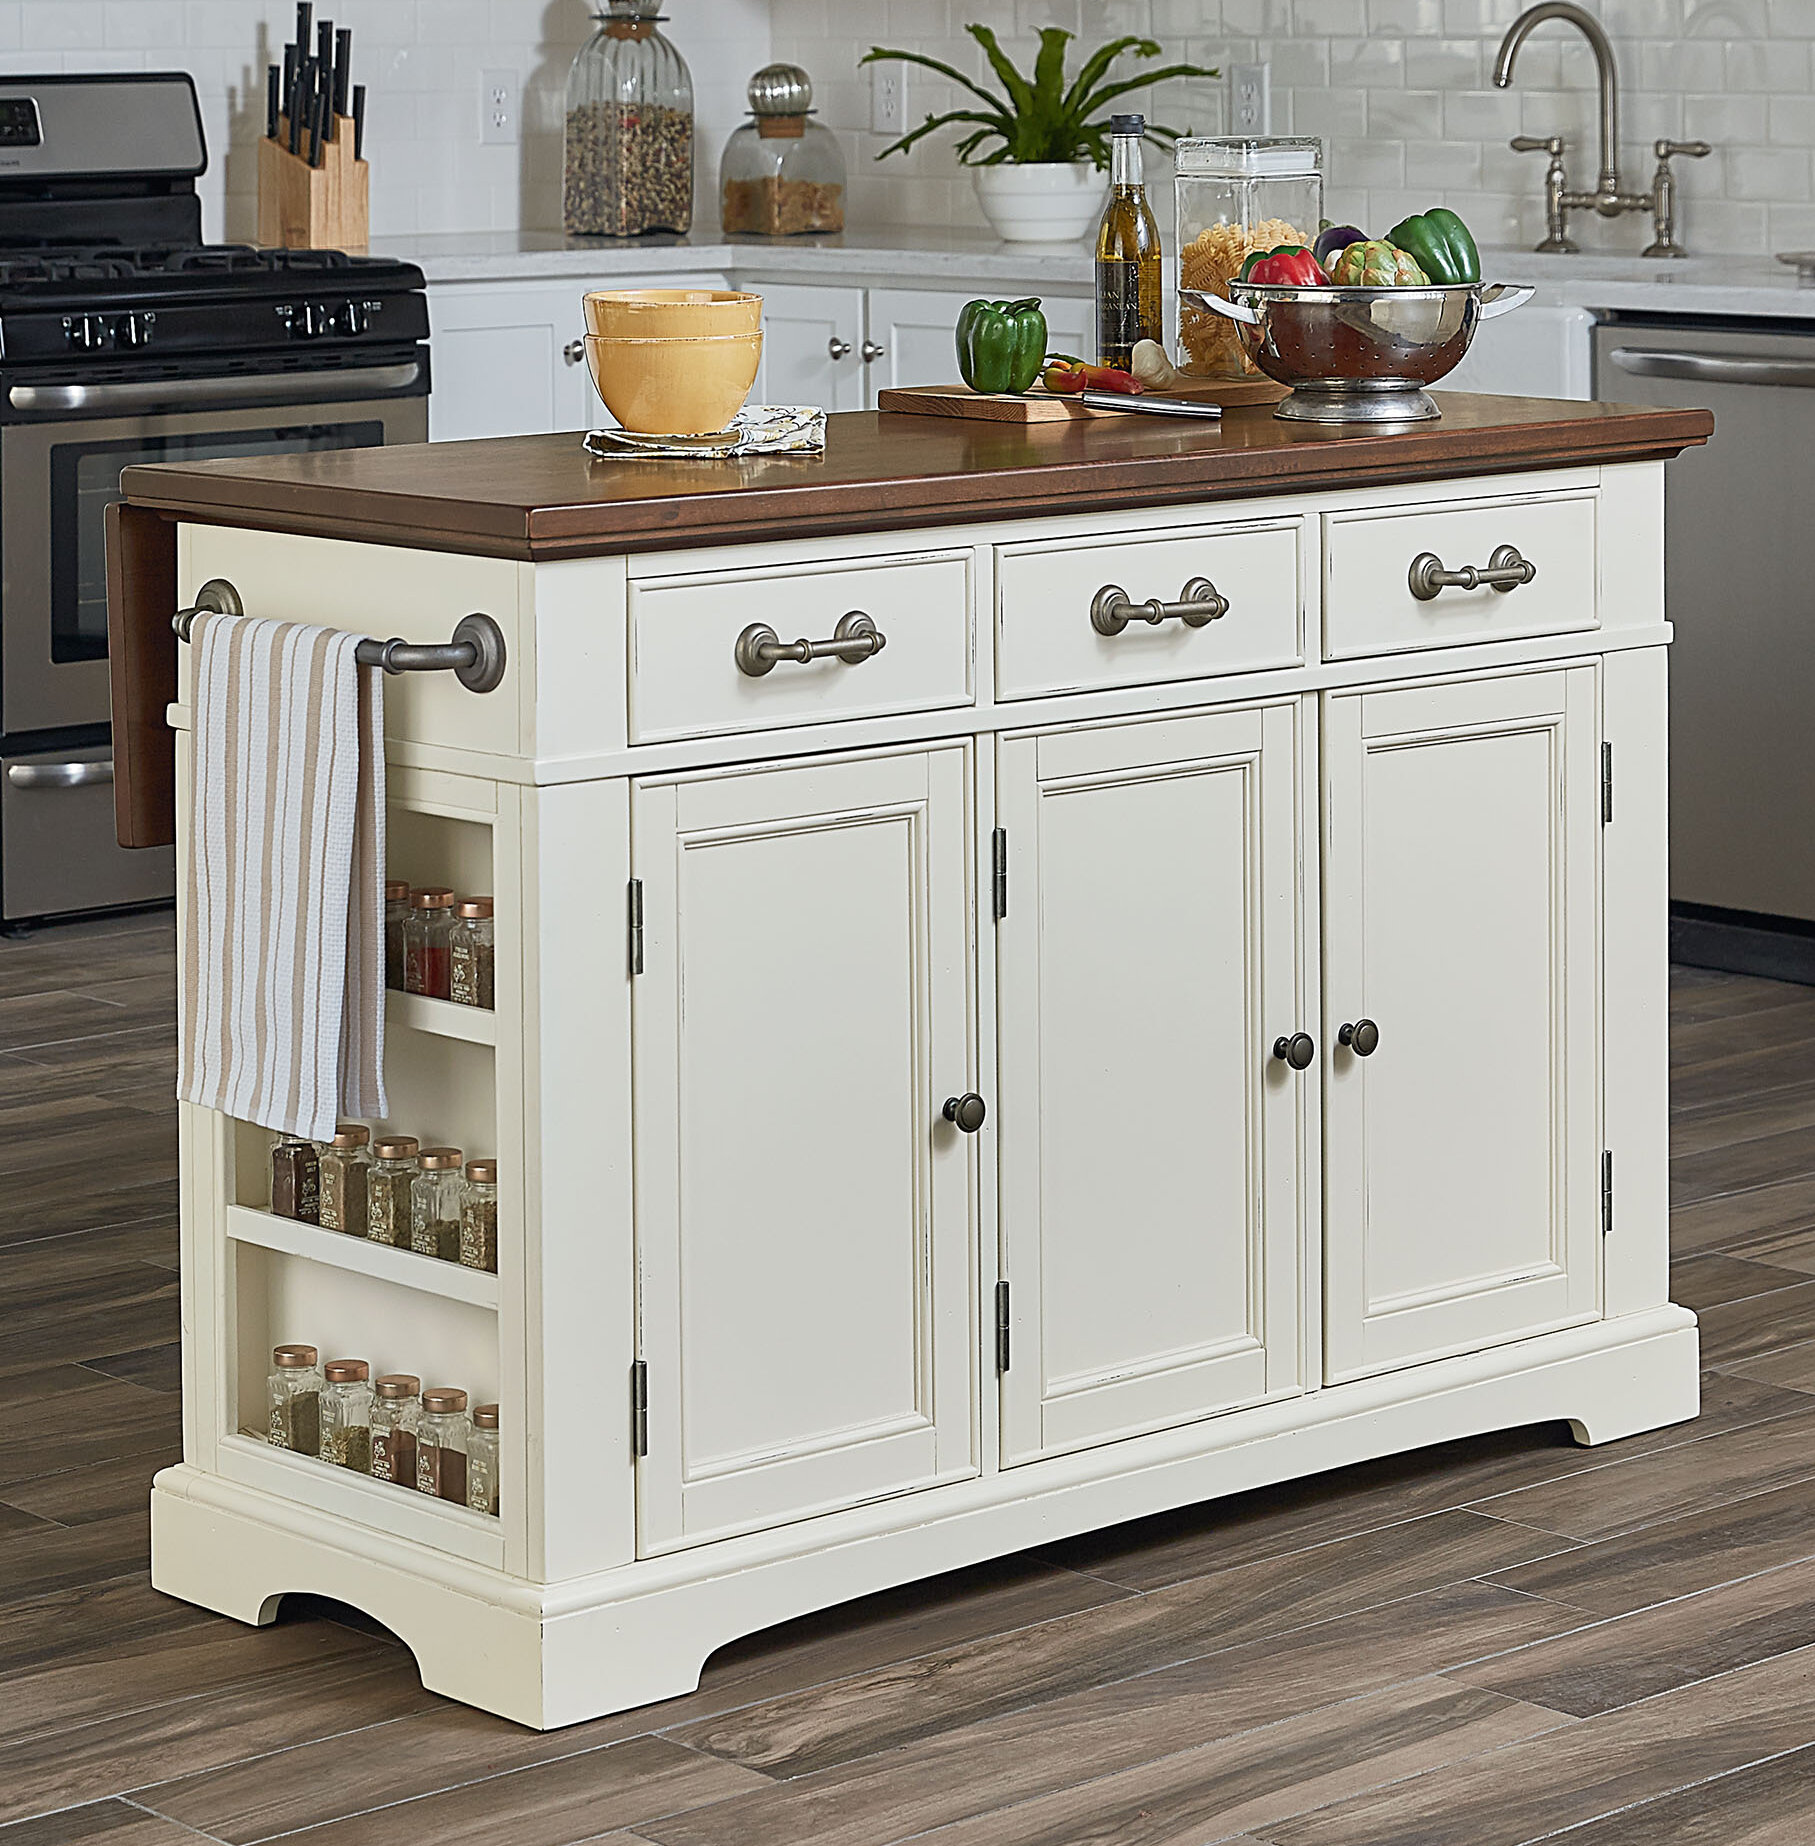 Maile Large Kitchen Island